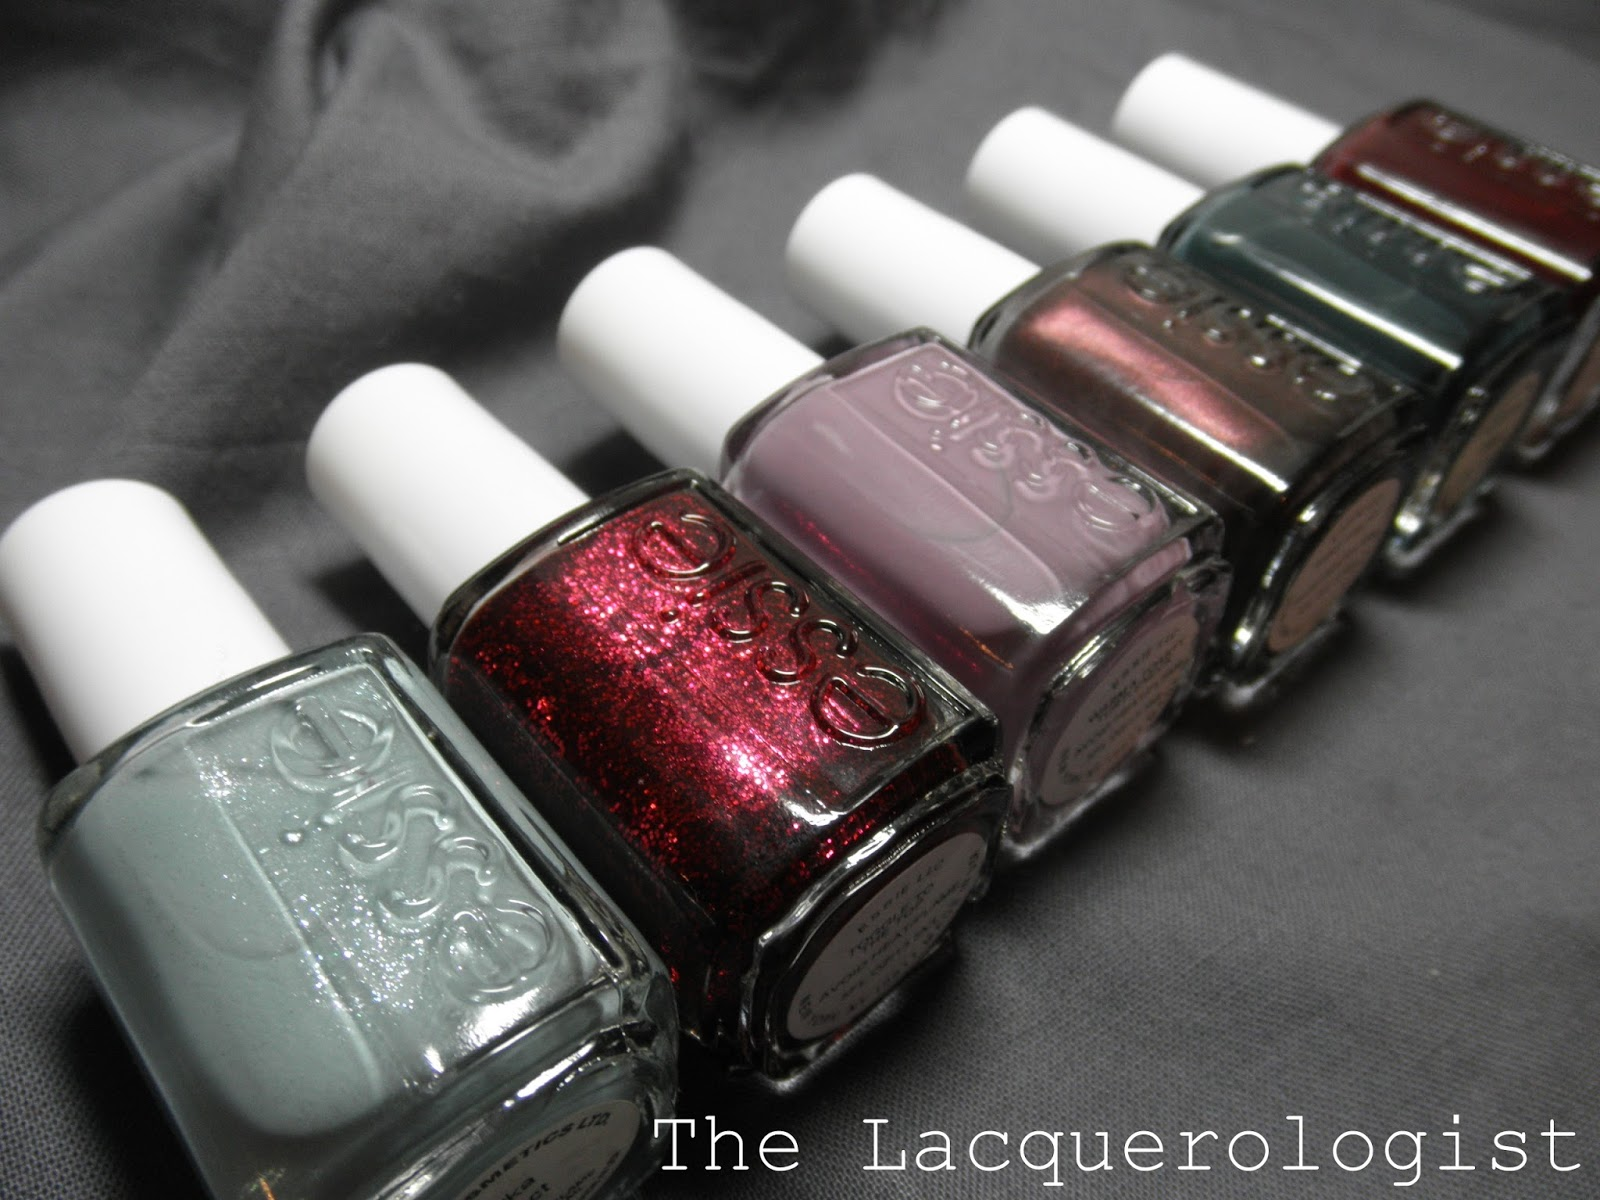 Essie's Winter Wonderland: The 2013 Shearling Darling Collection